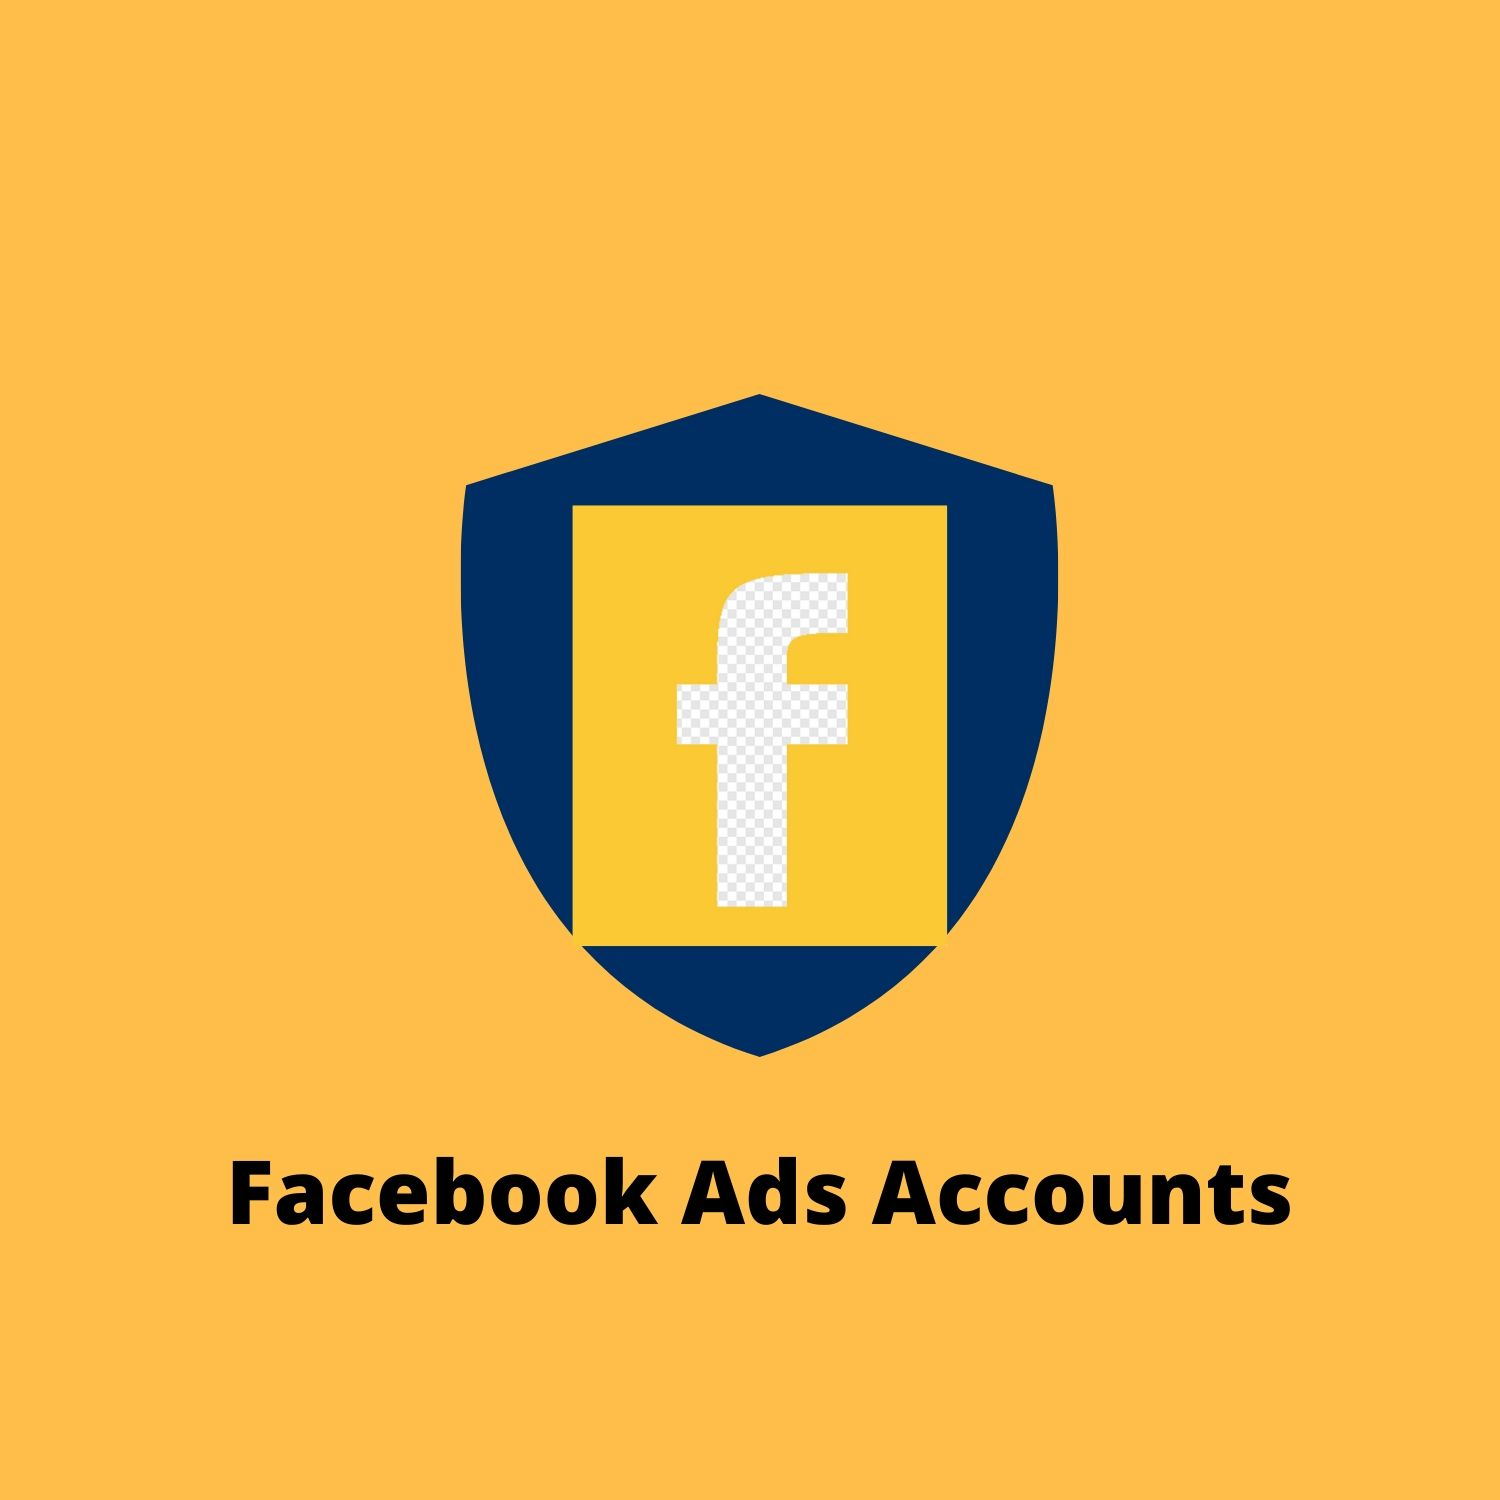 The best will come by having one Facebook ad account disabled